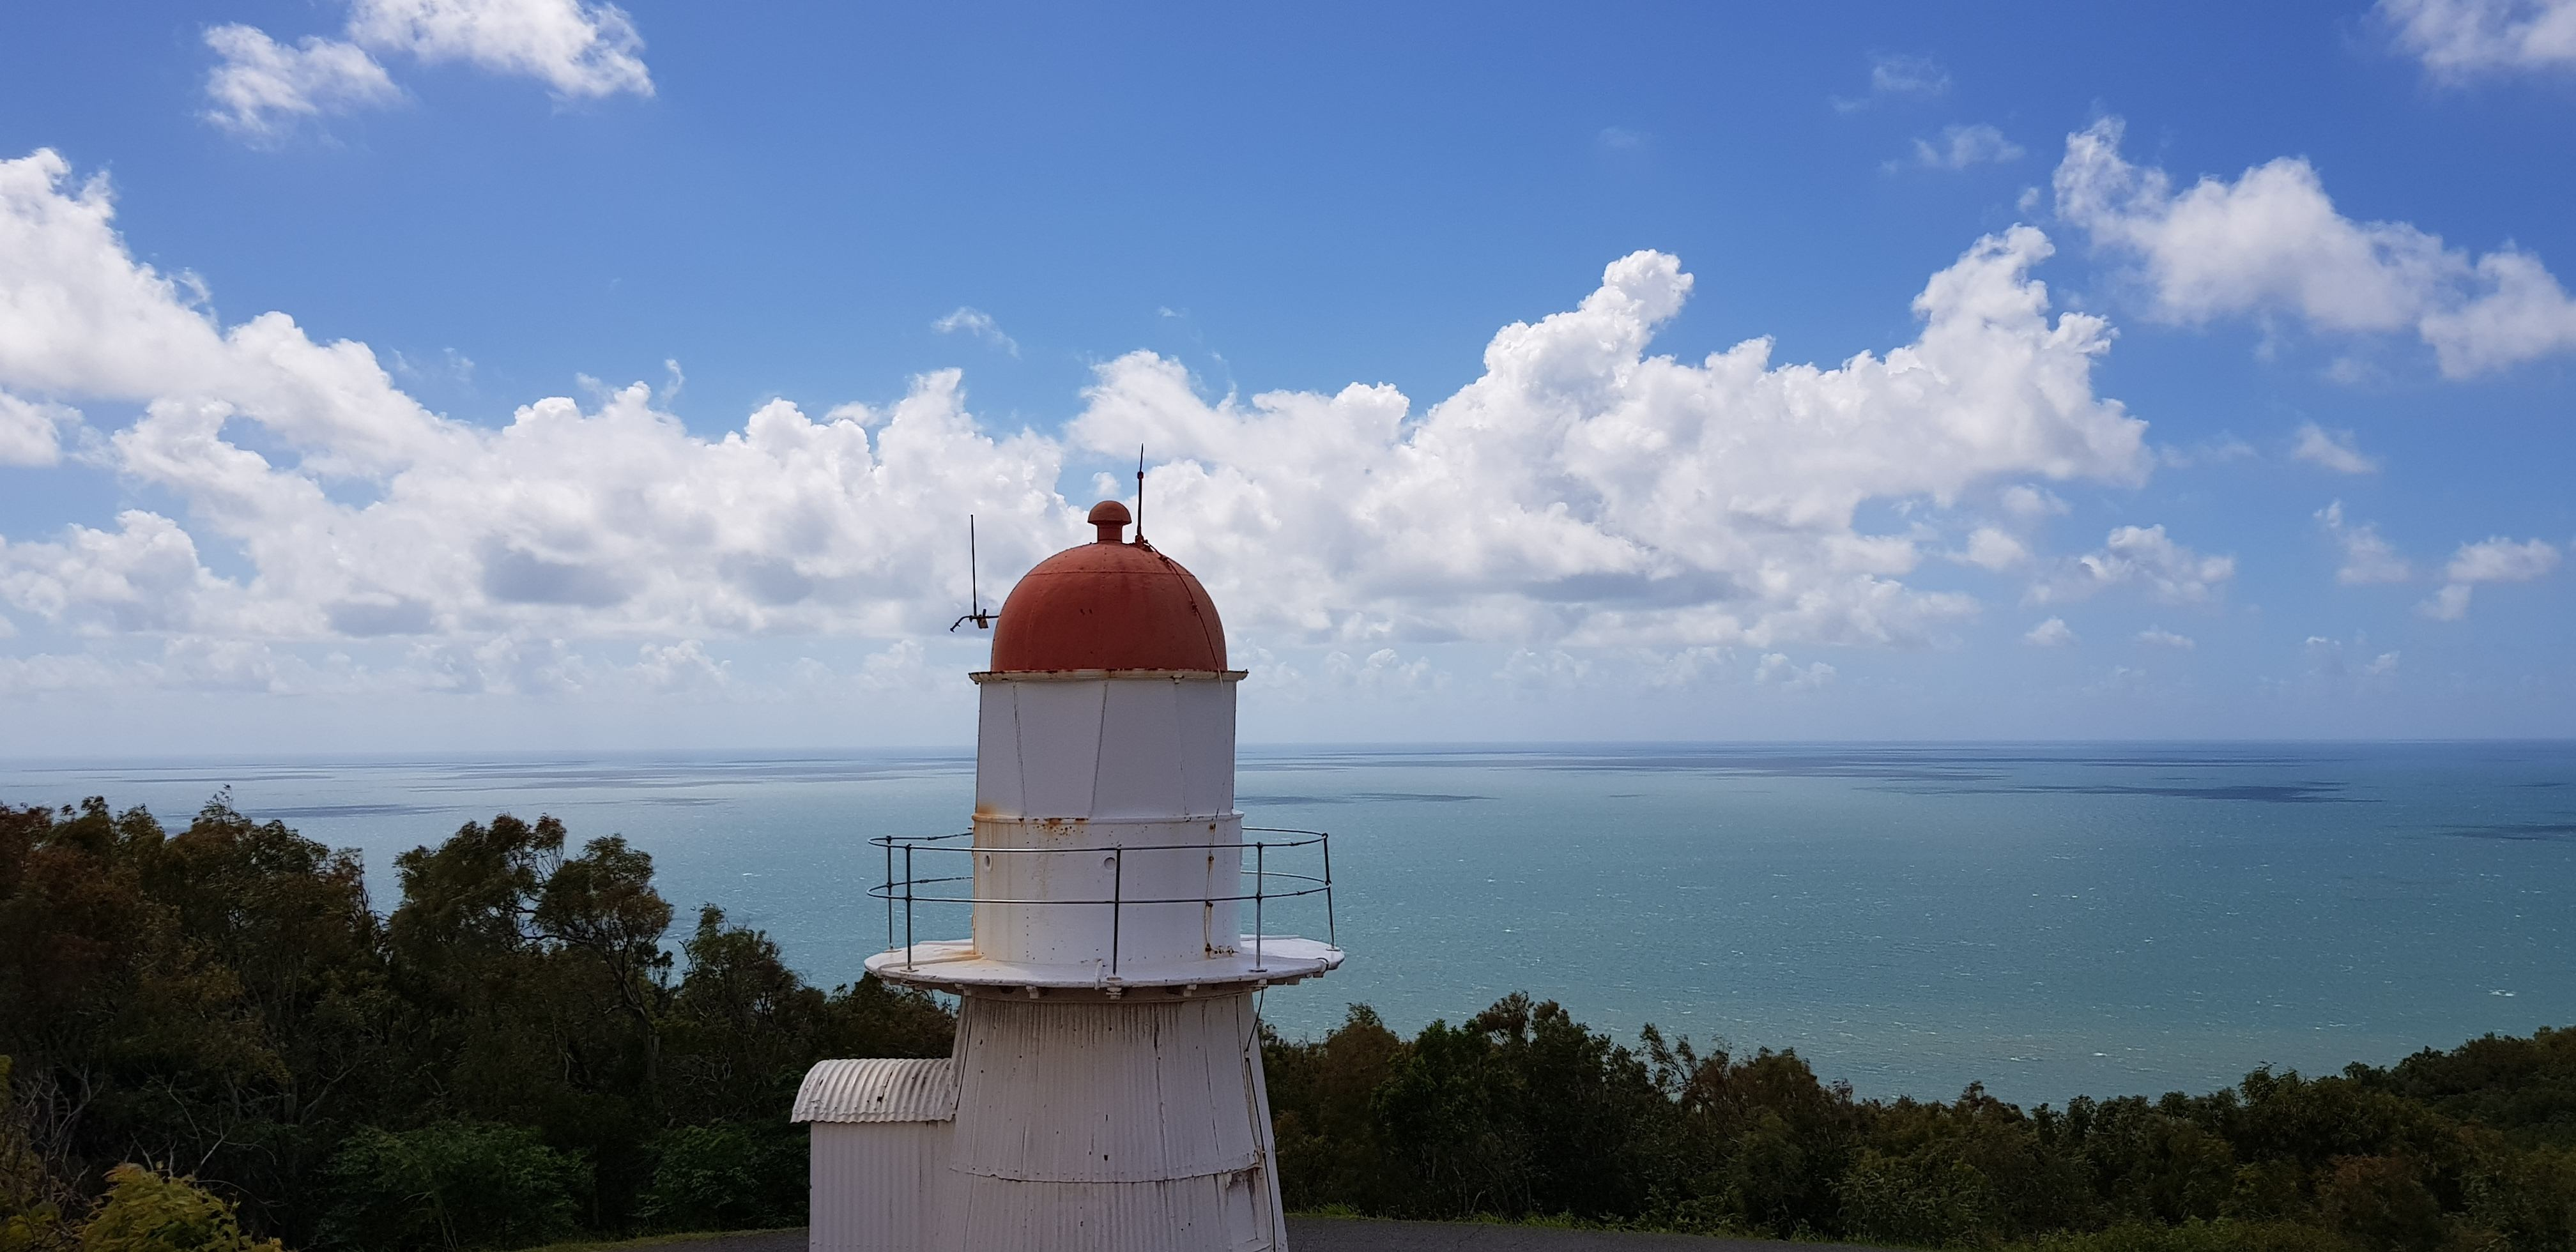 The old cooktown lighthouse